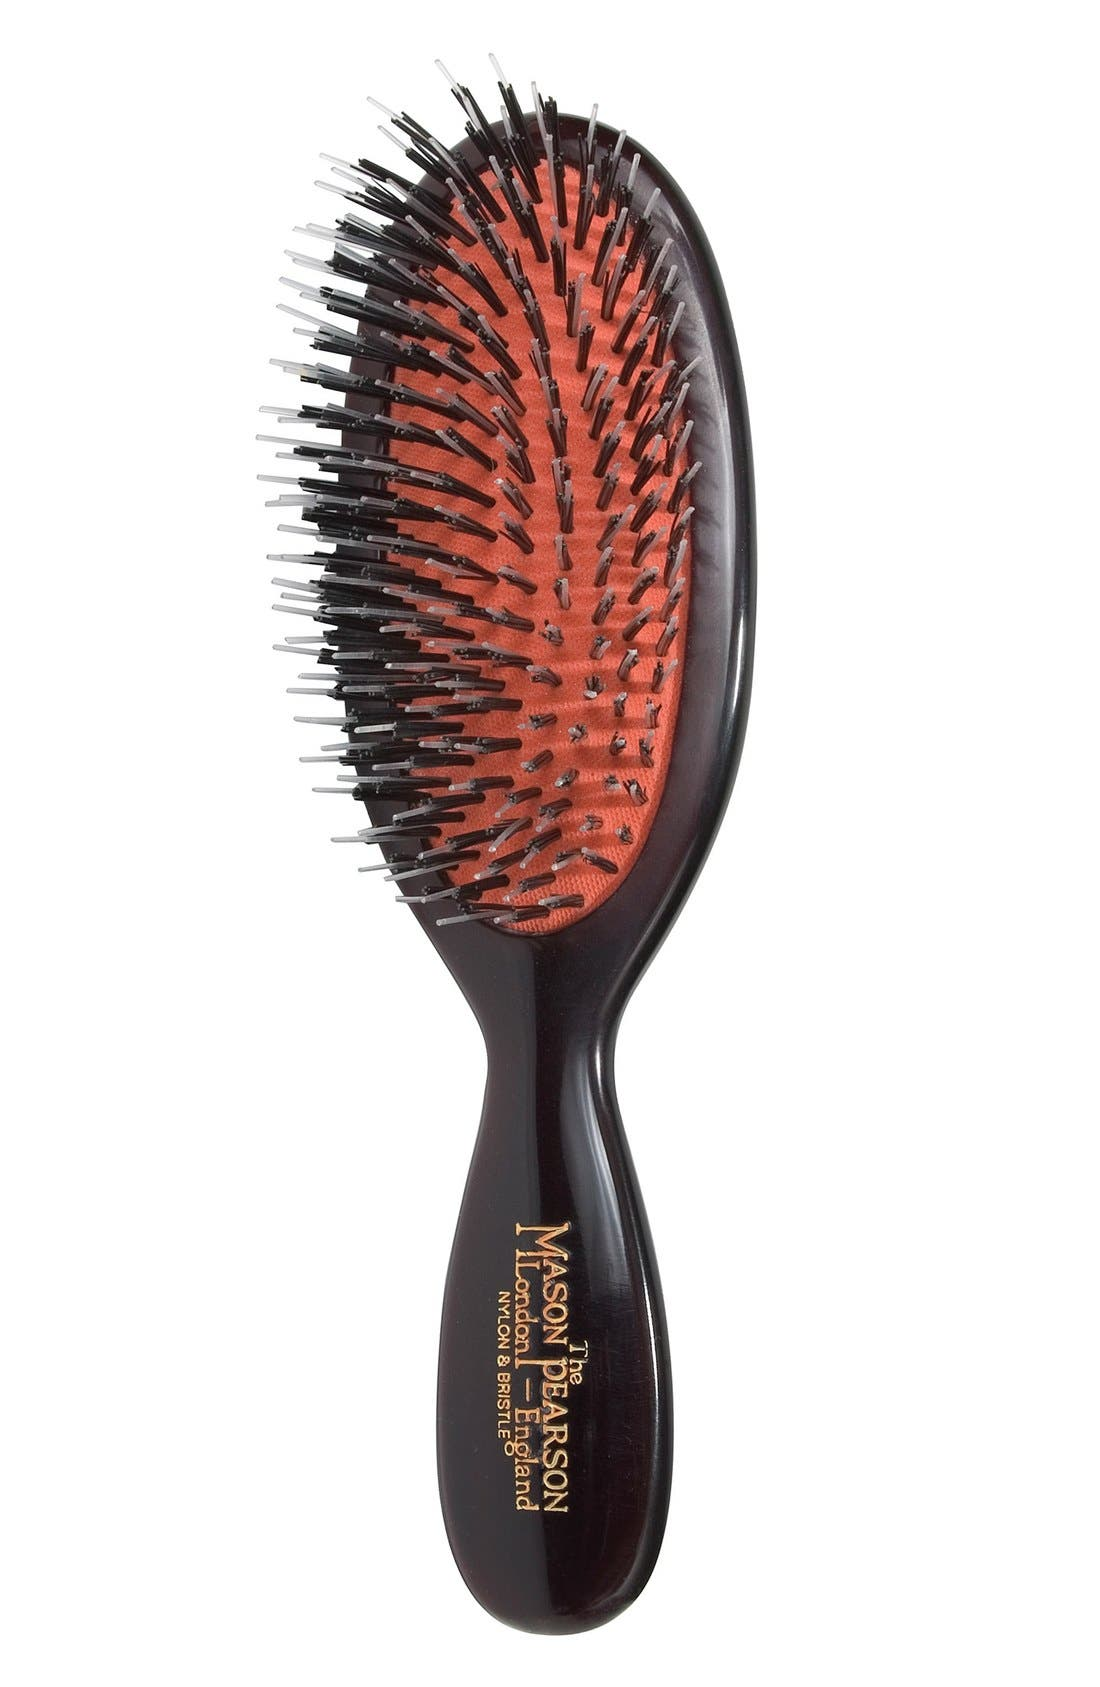 Mason Pearson Pocket Mixture Nylon & Boar Bristle Brush for Short Coarse to Normal Hair